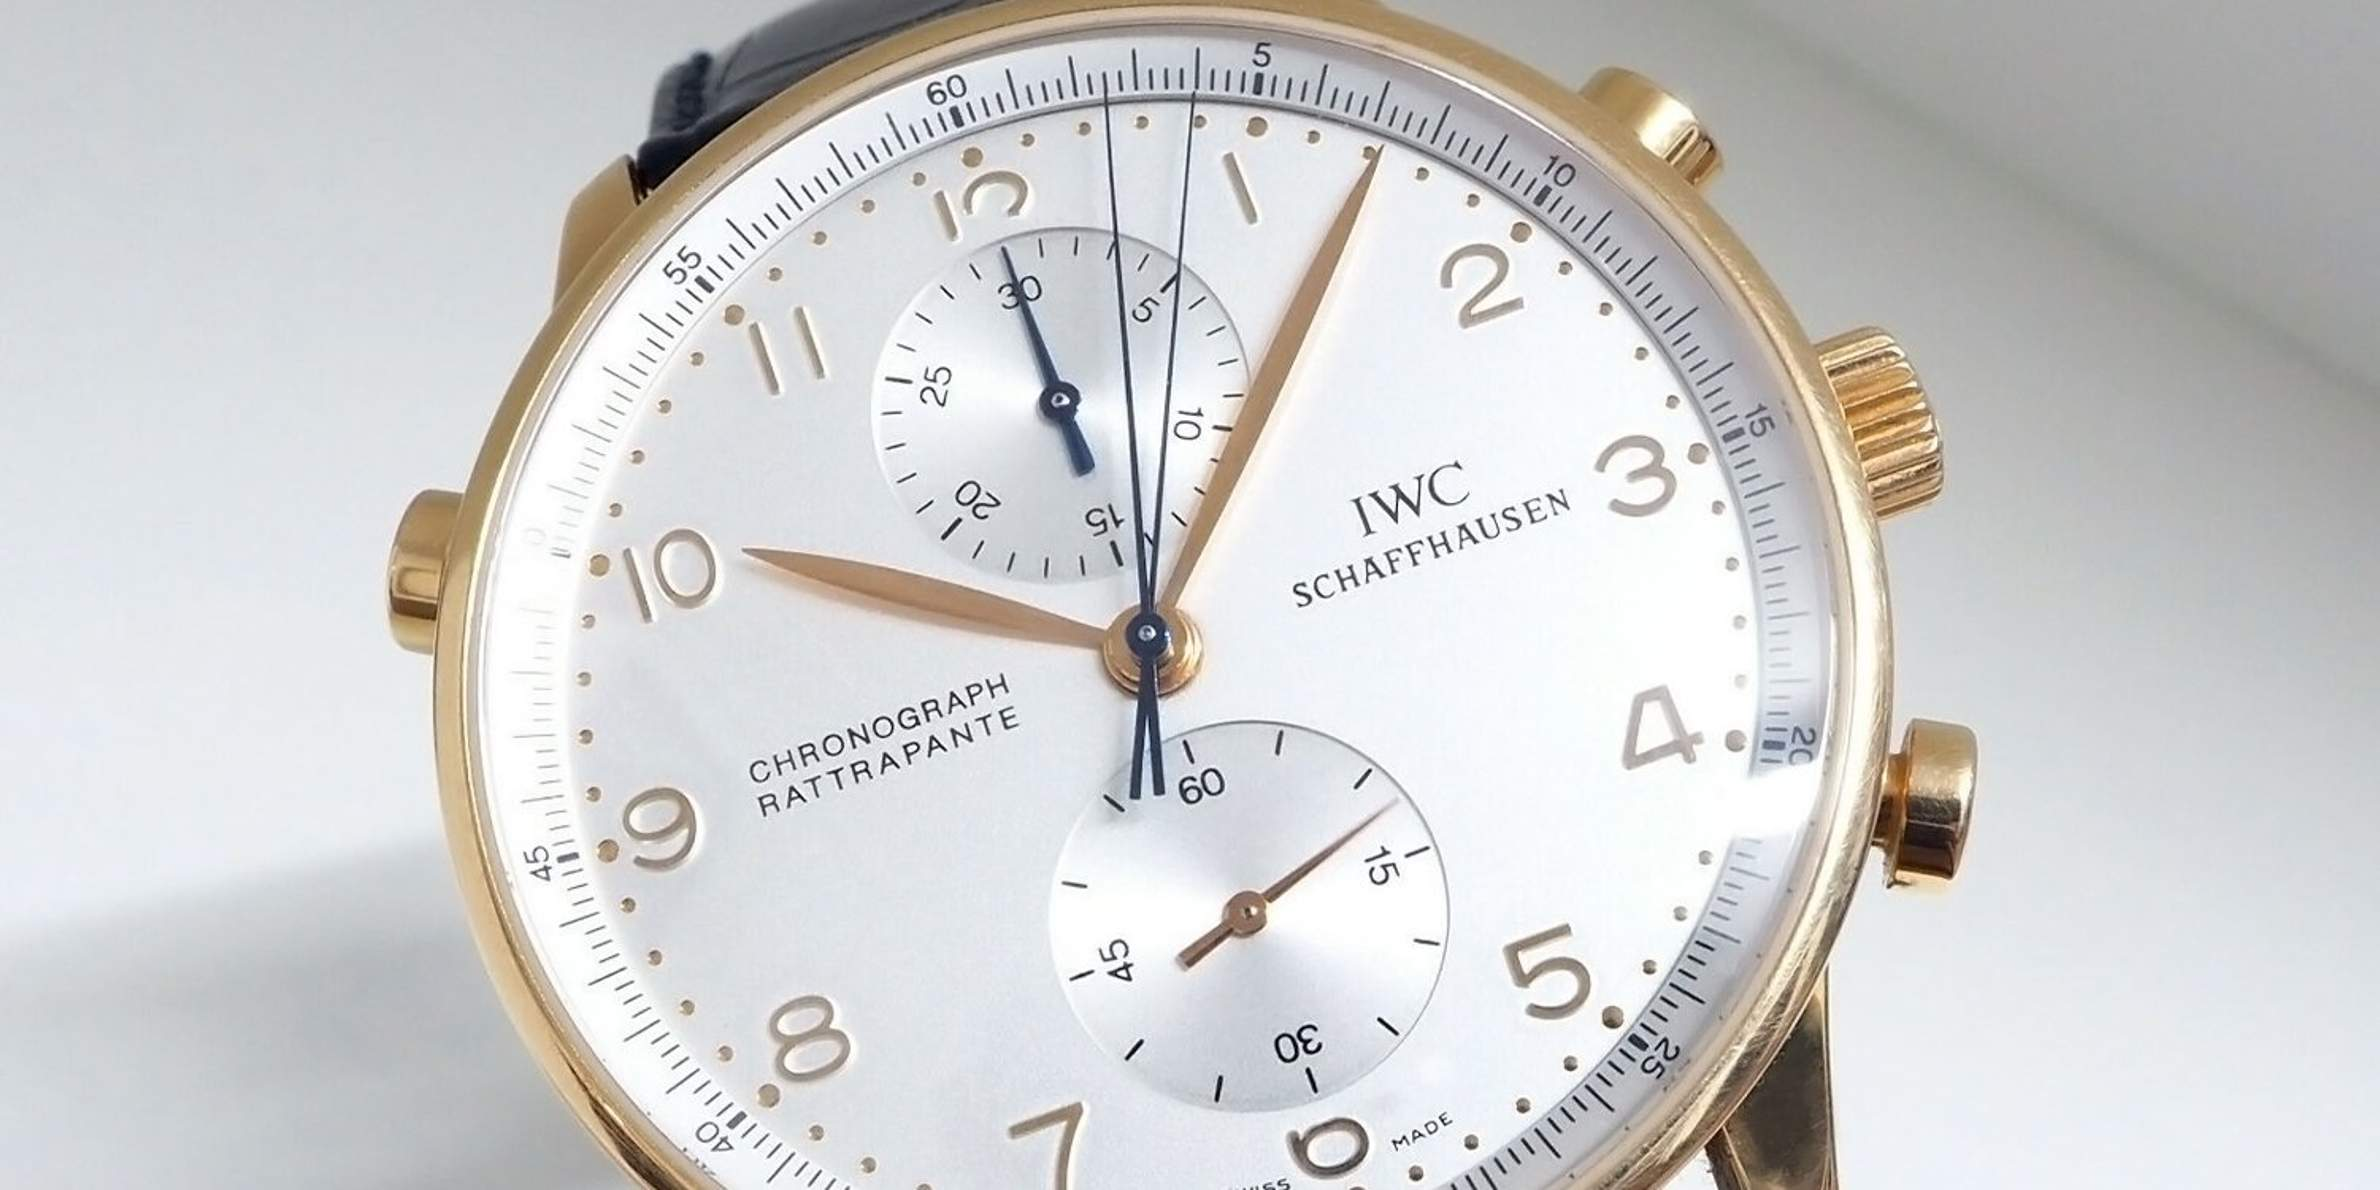 Flyback-Rattrapante-Chronographen-2-1